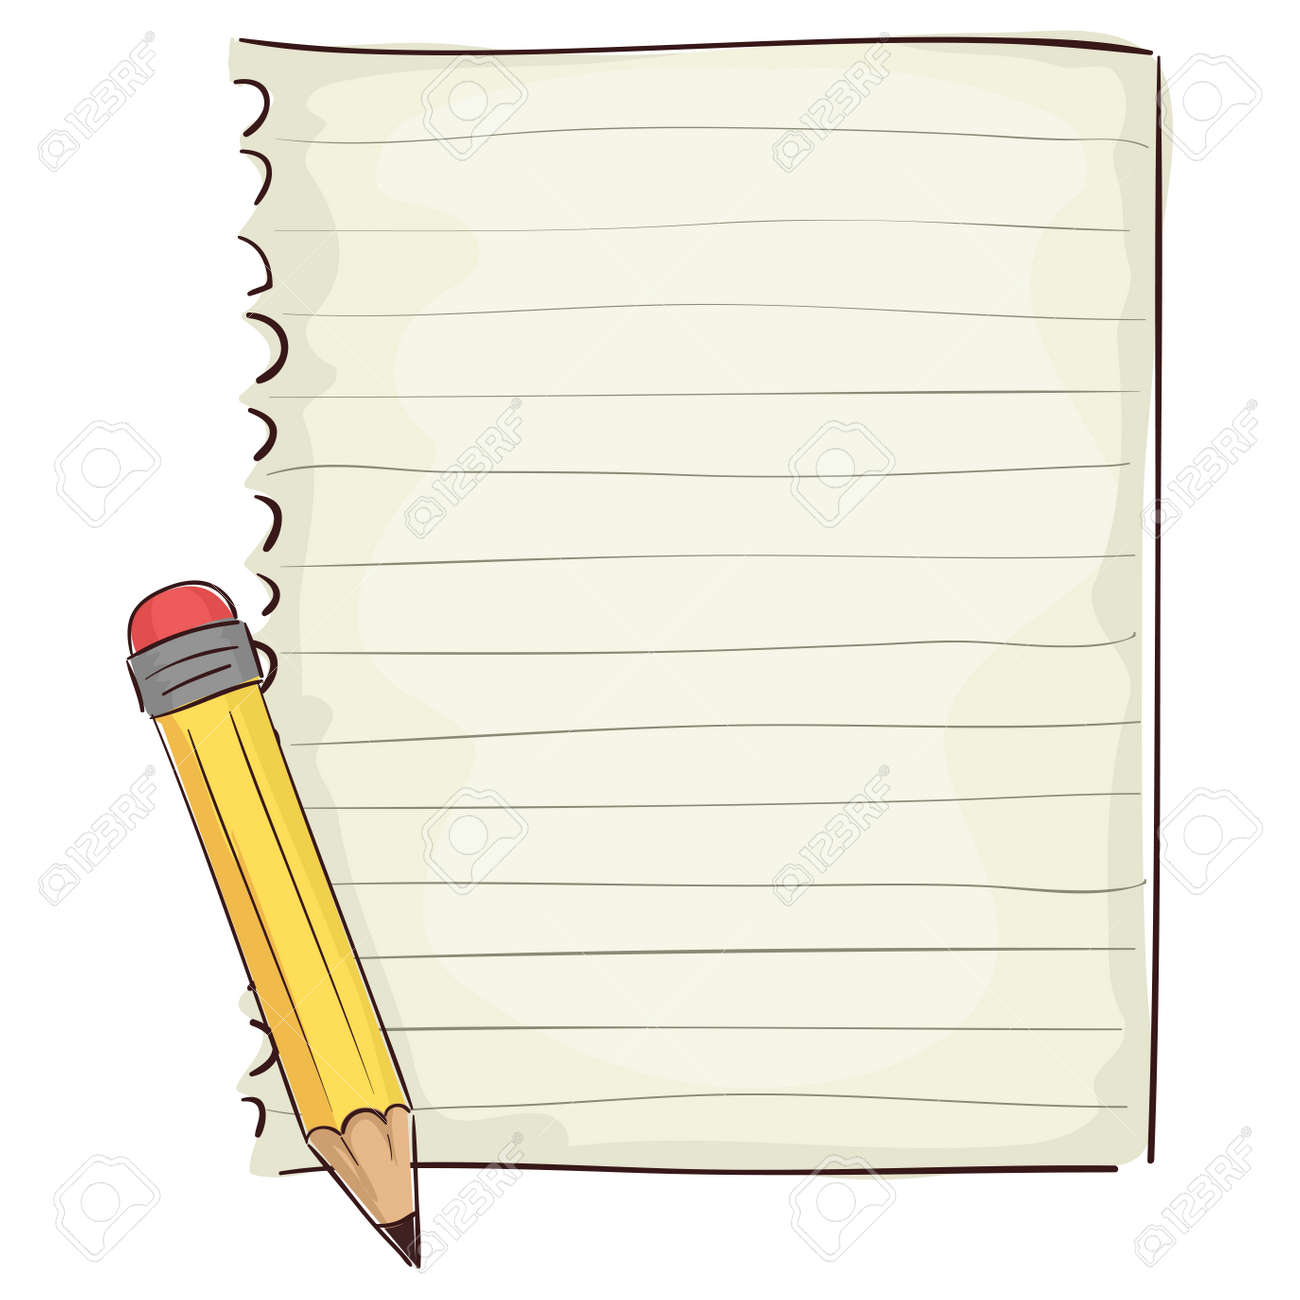 Vector Illustration of Blank Piece of Paper and Pencil - 70277247